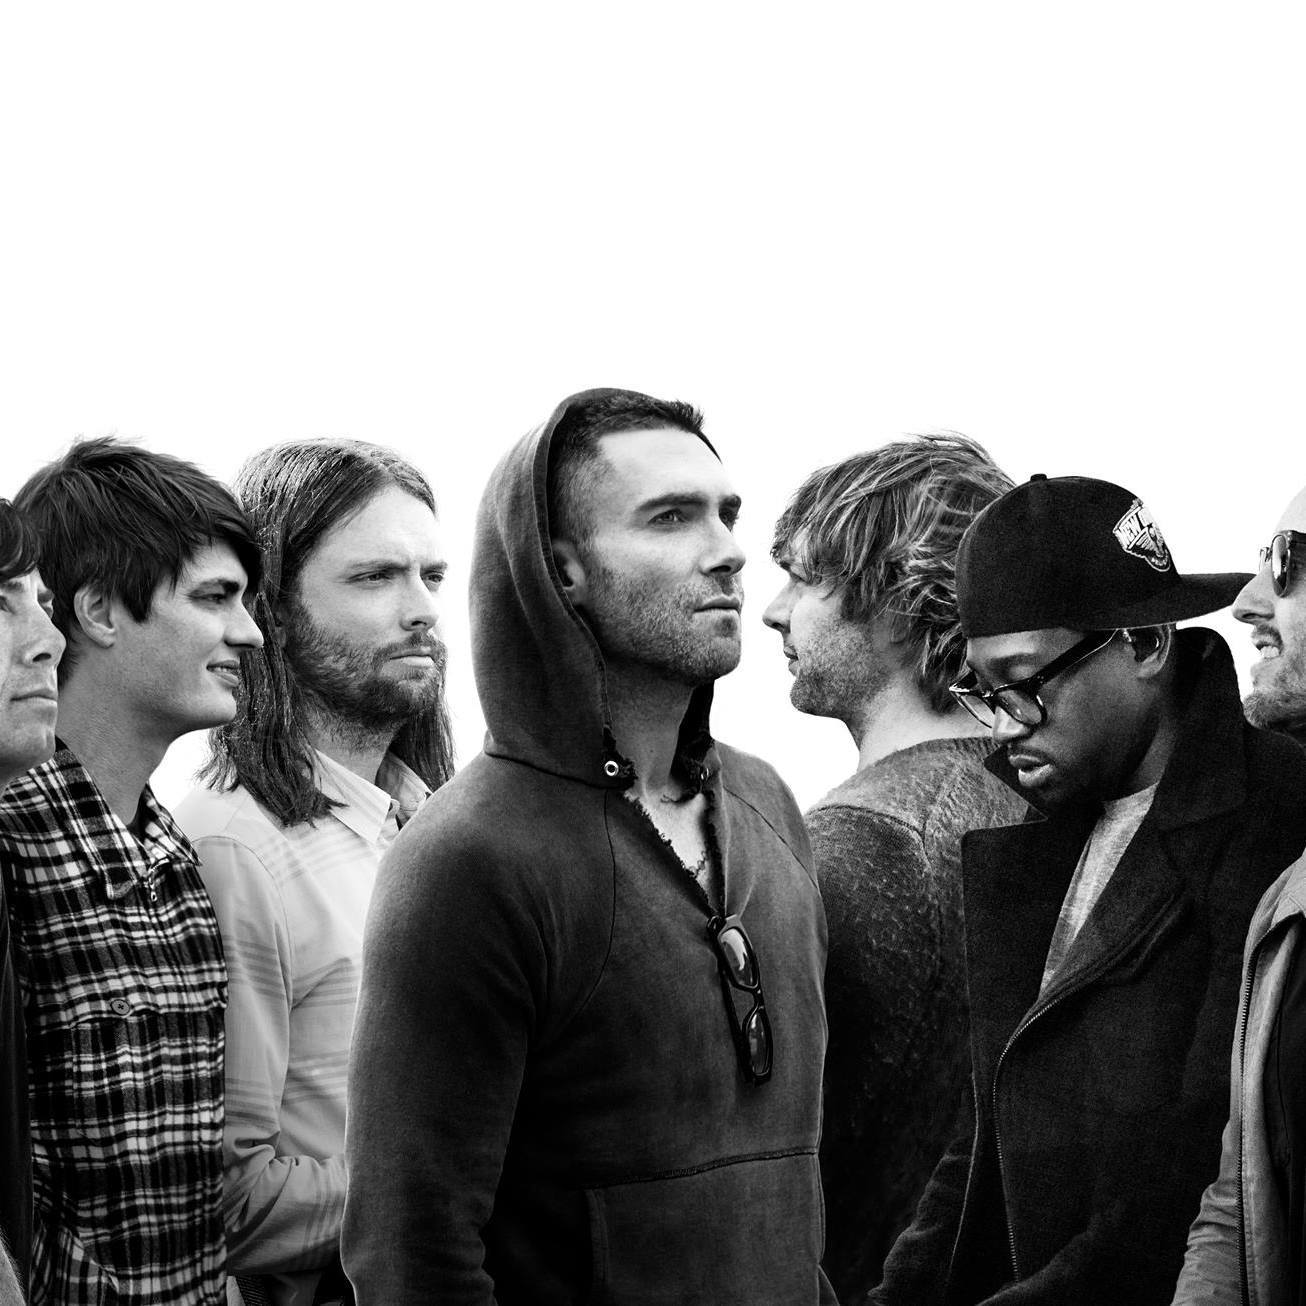 Charitybuzz 2 tickets to see maroon 5 perform live at their lotpage kristyandbryce Image collections